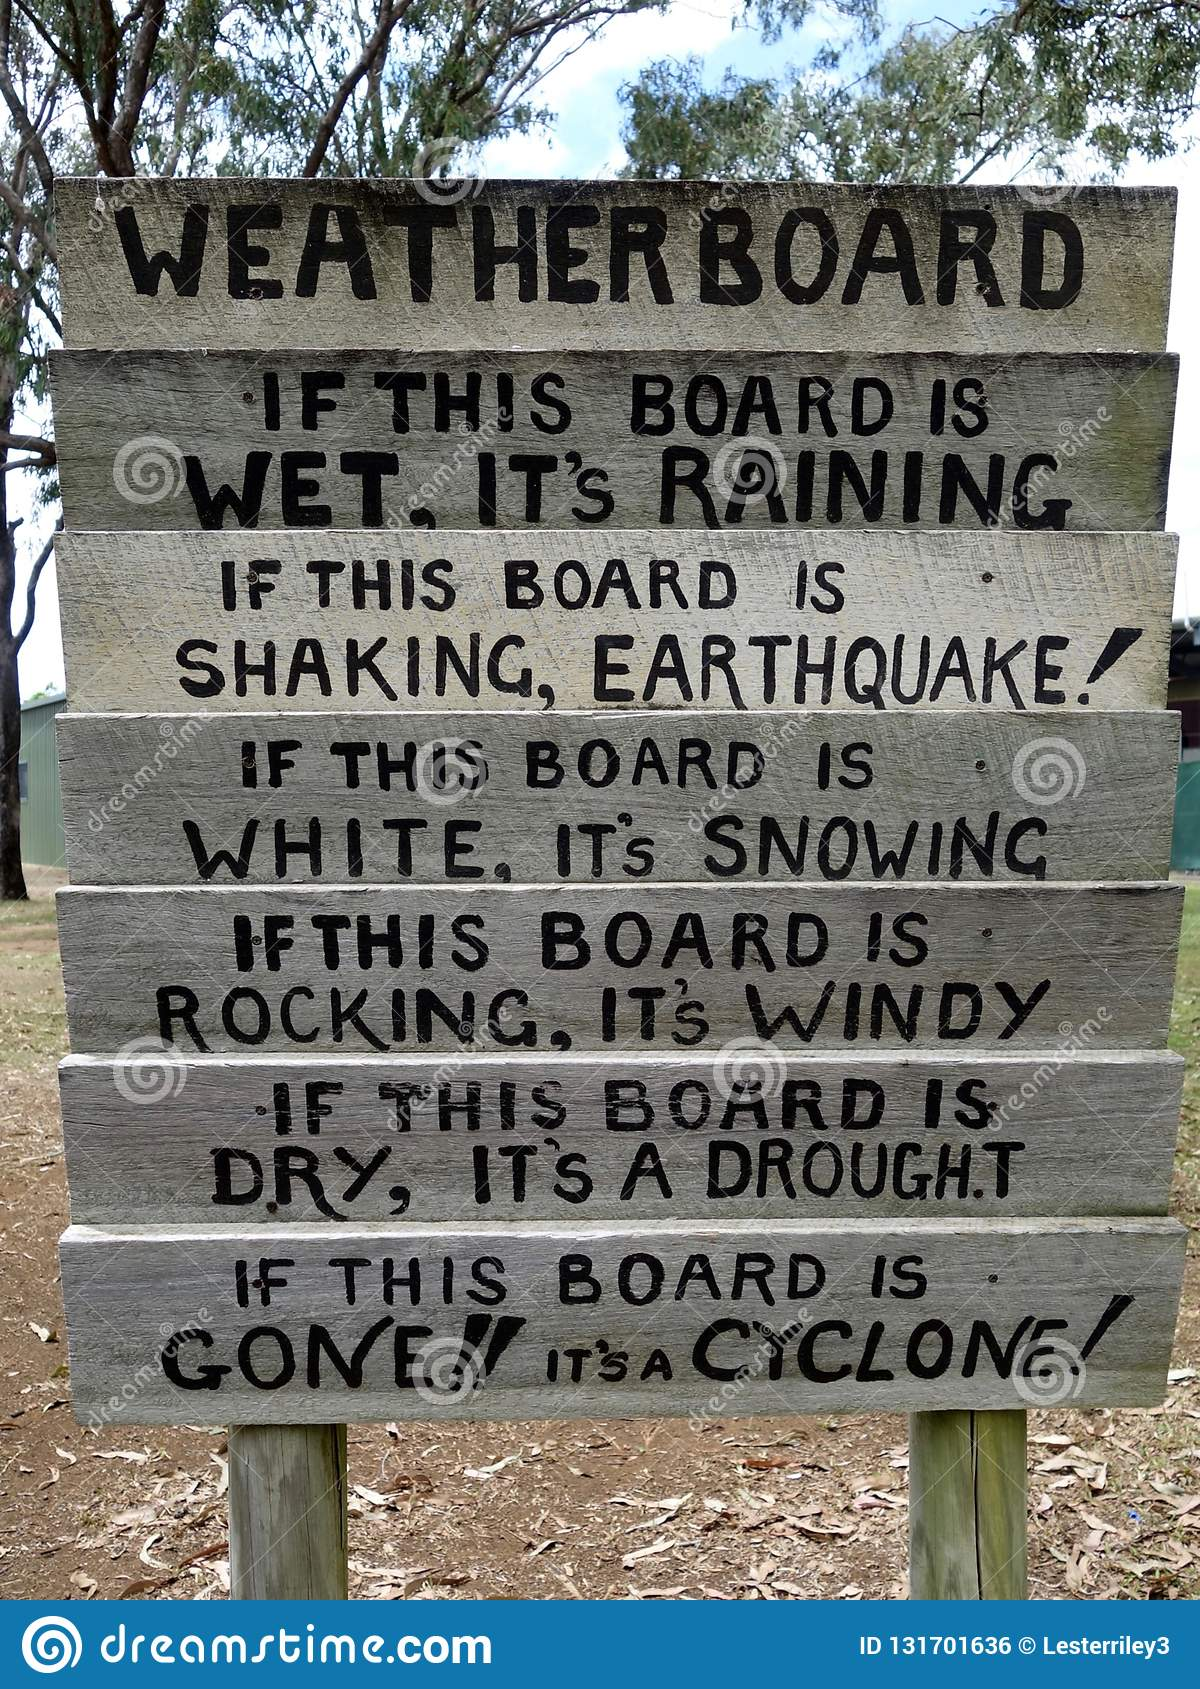 A novelty weather reporting station